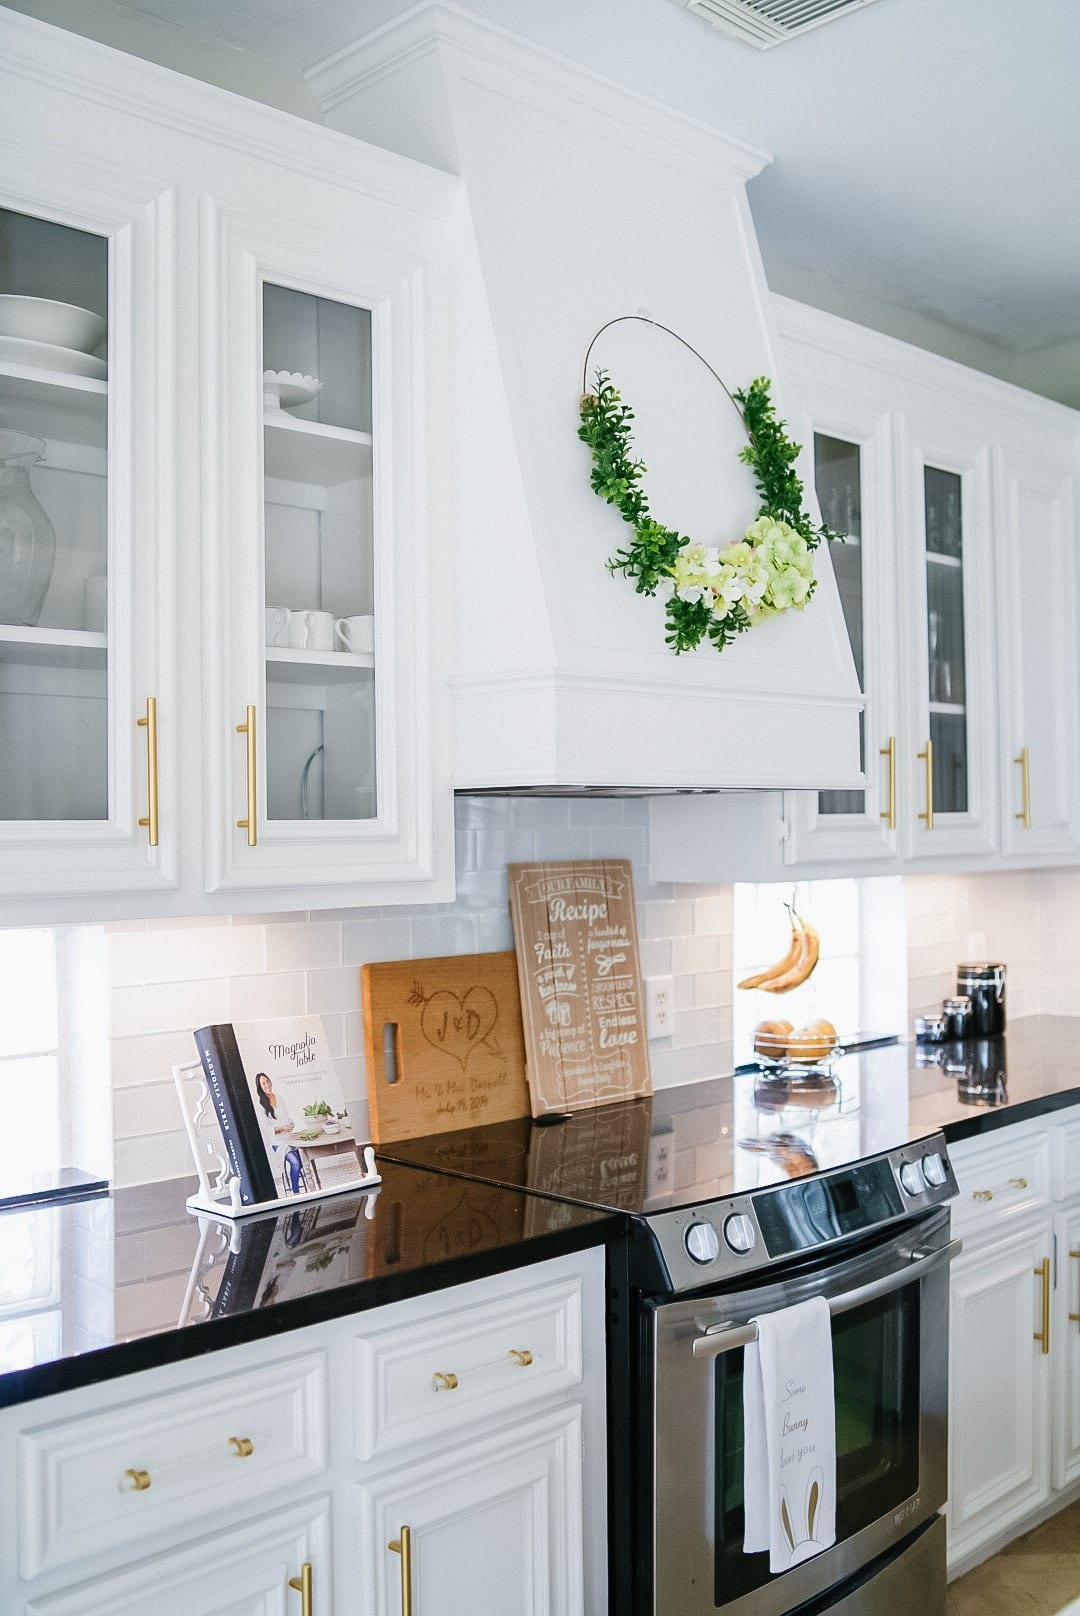 absolute black quartz countertop, white cabinets, glass doors, Magnolia cookbook, electric stovetop, white custom vent hood